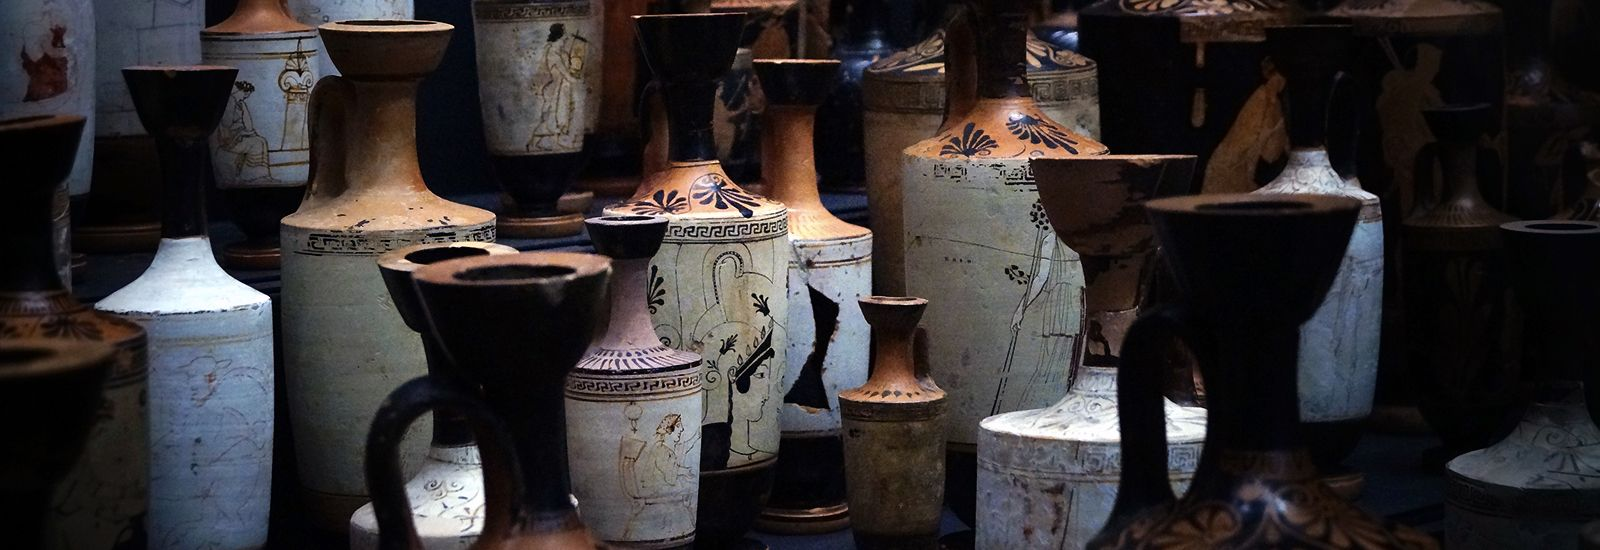 A collection of old vases